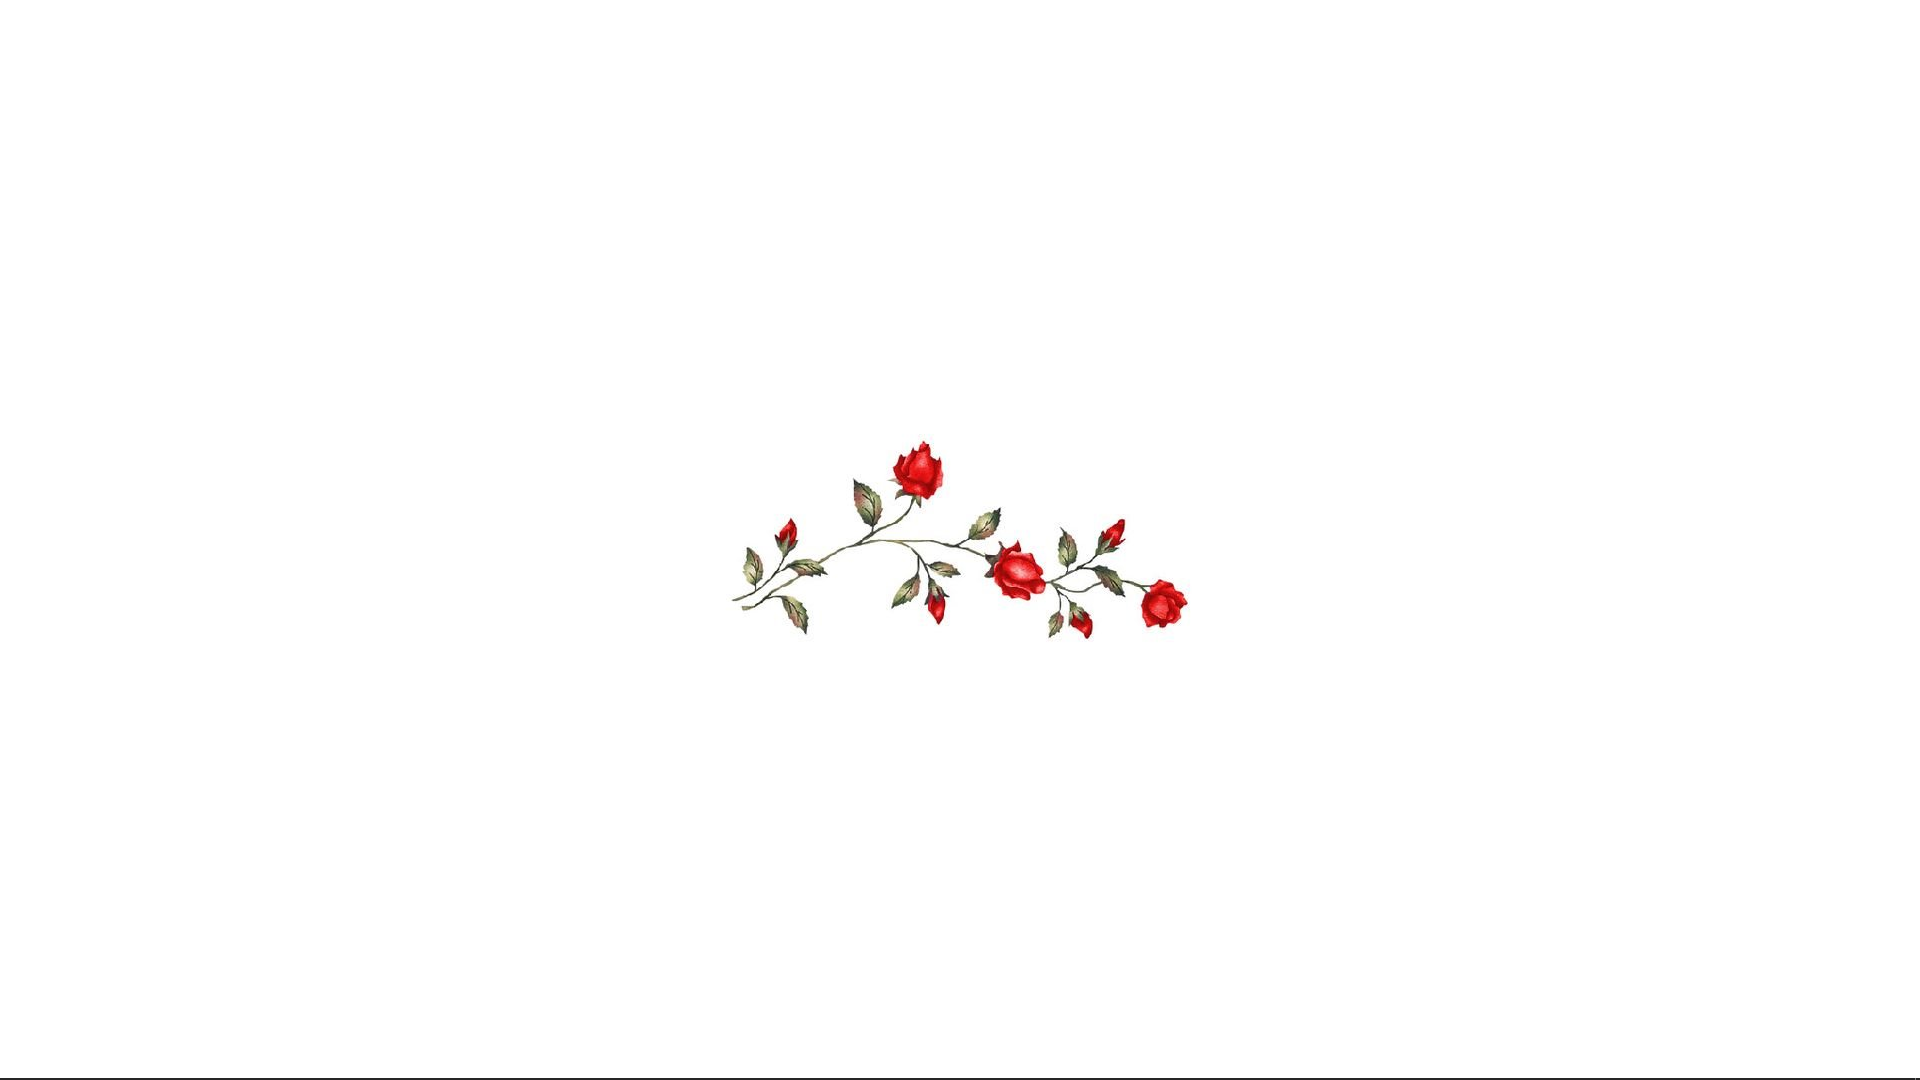 Red Roses Background For Computer White And Red And White Minimalistic Cute Basic Desktop Wallpaper Art Macbook Wallpaper Laptop Wallpaper Desktop Wallpapers